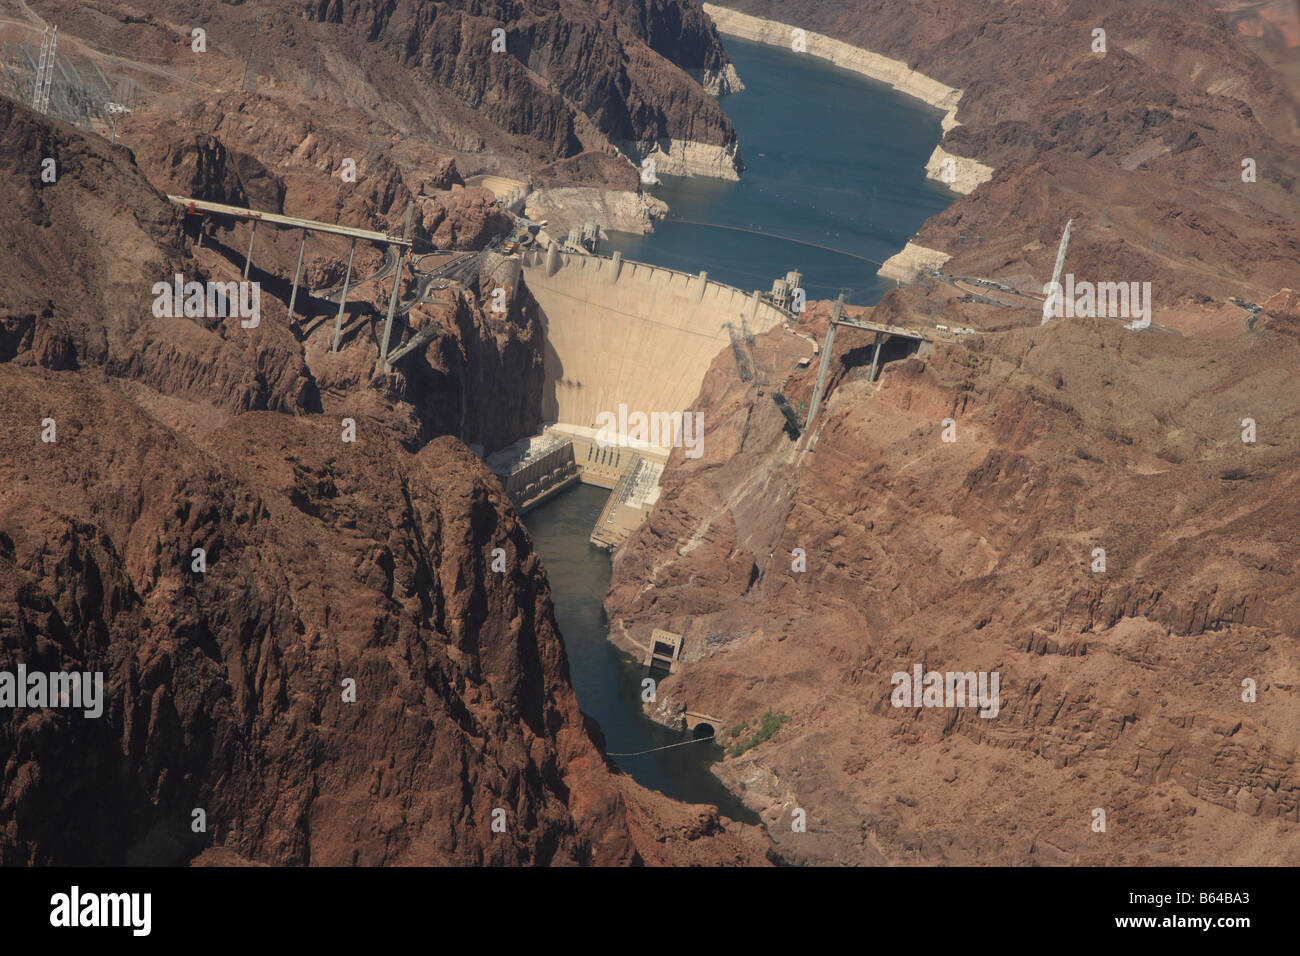 Aerial view of the Hoover Dam on the Arizona Nevada border Stock Photo